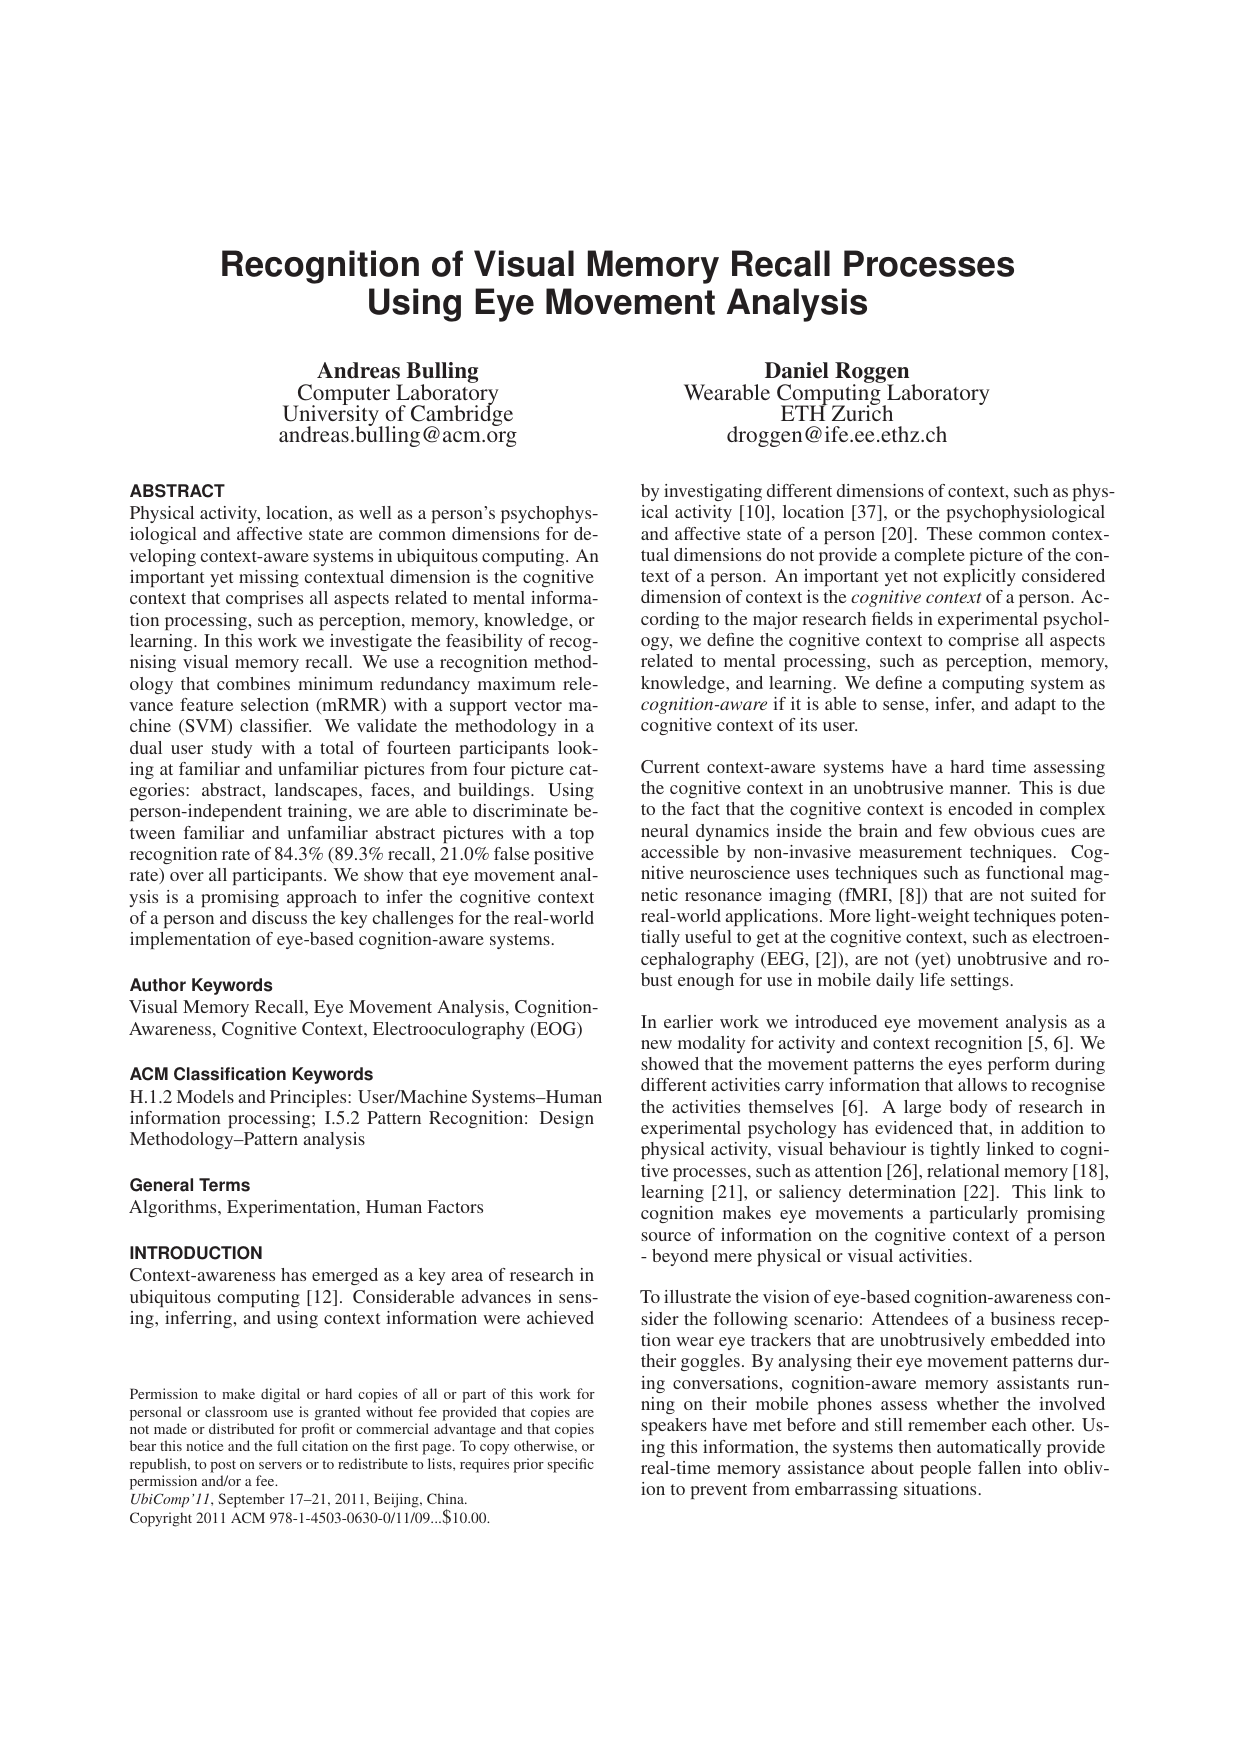 Recognition of Visual Memory Recall Processes Using Eye Movement Analysis